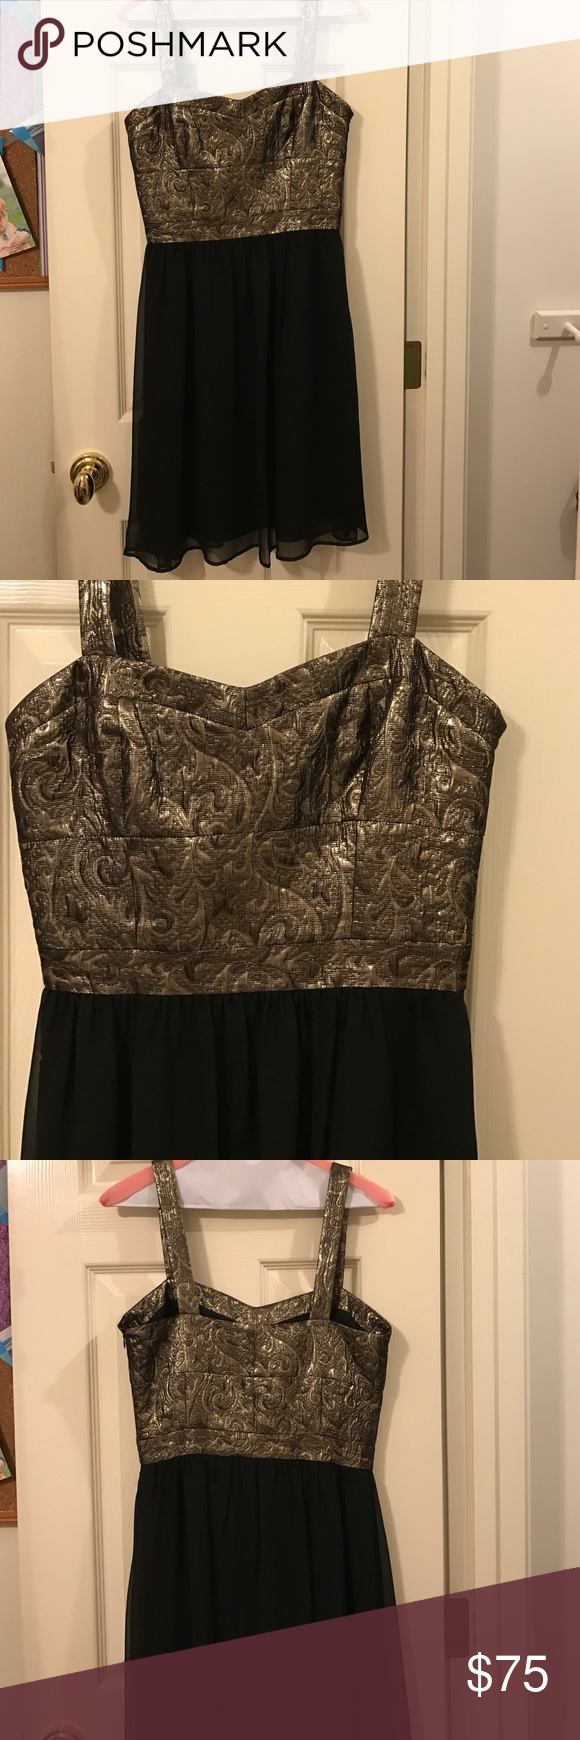 Black and gold cocktail dress worn once then dry cleaned perfect